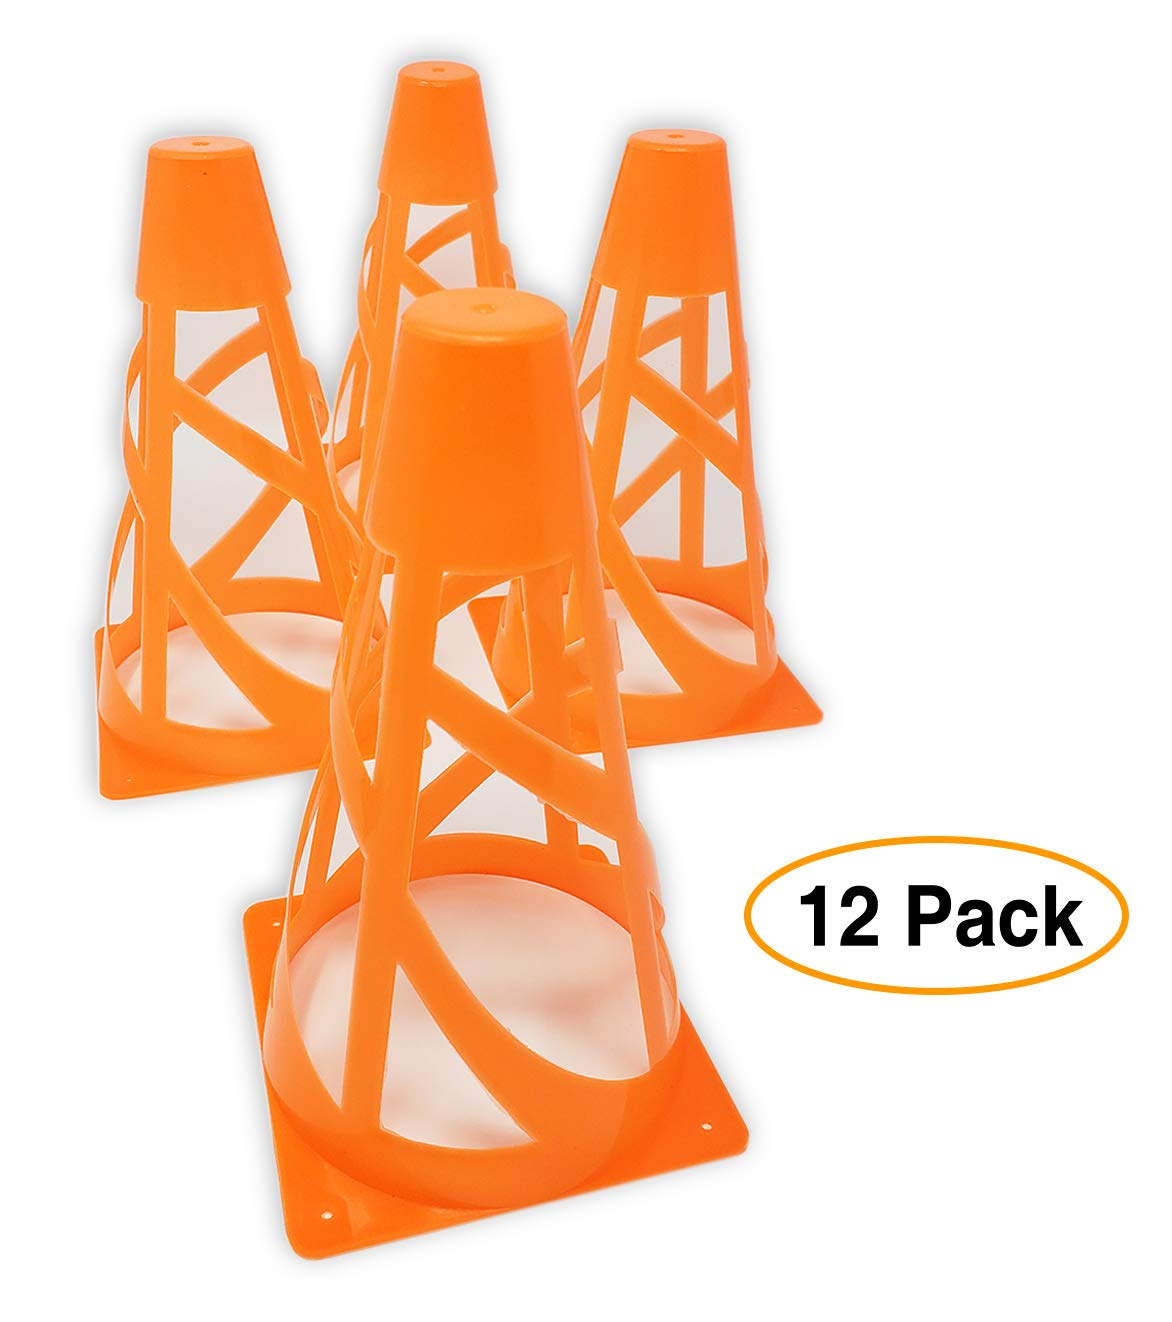 "Mini Orange Safety Cones, for Soccer Sports or Traffic. 7"" (12 Pack) Multipurpose for Gaming and Festive Events"